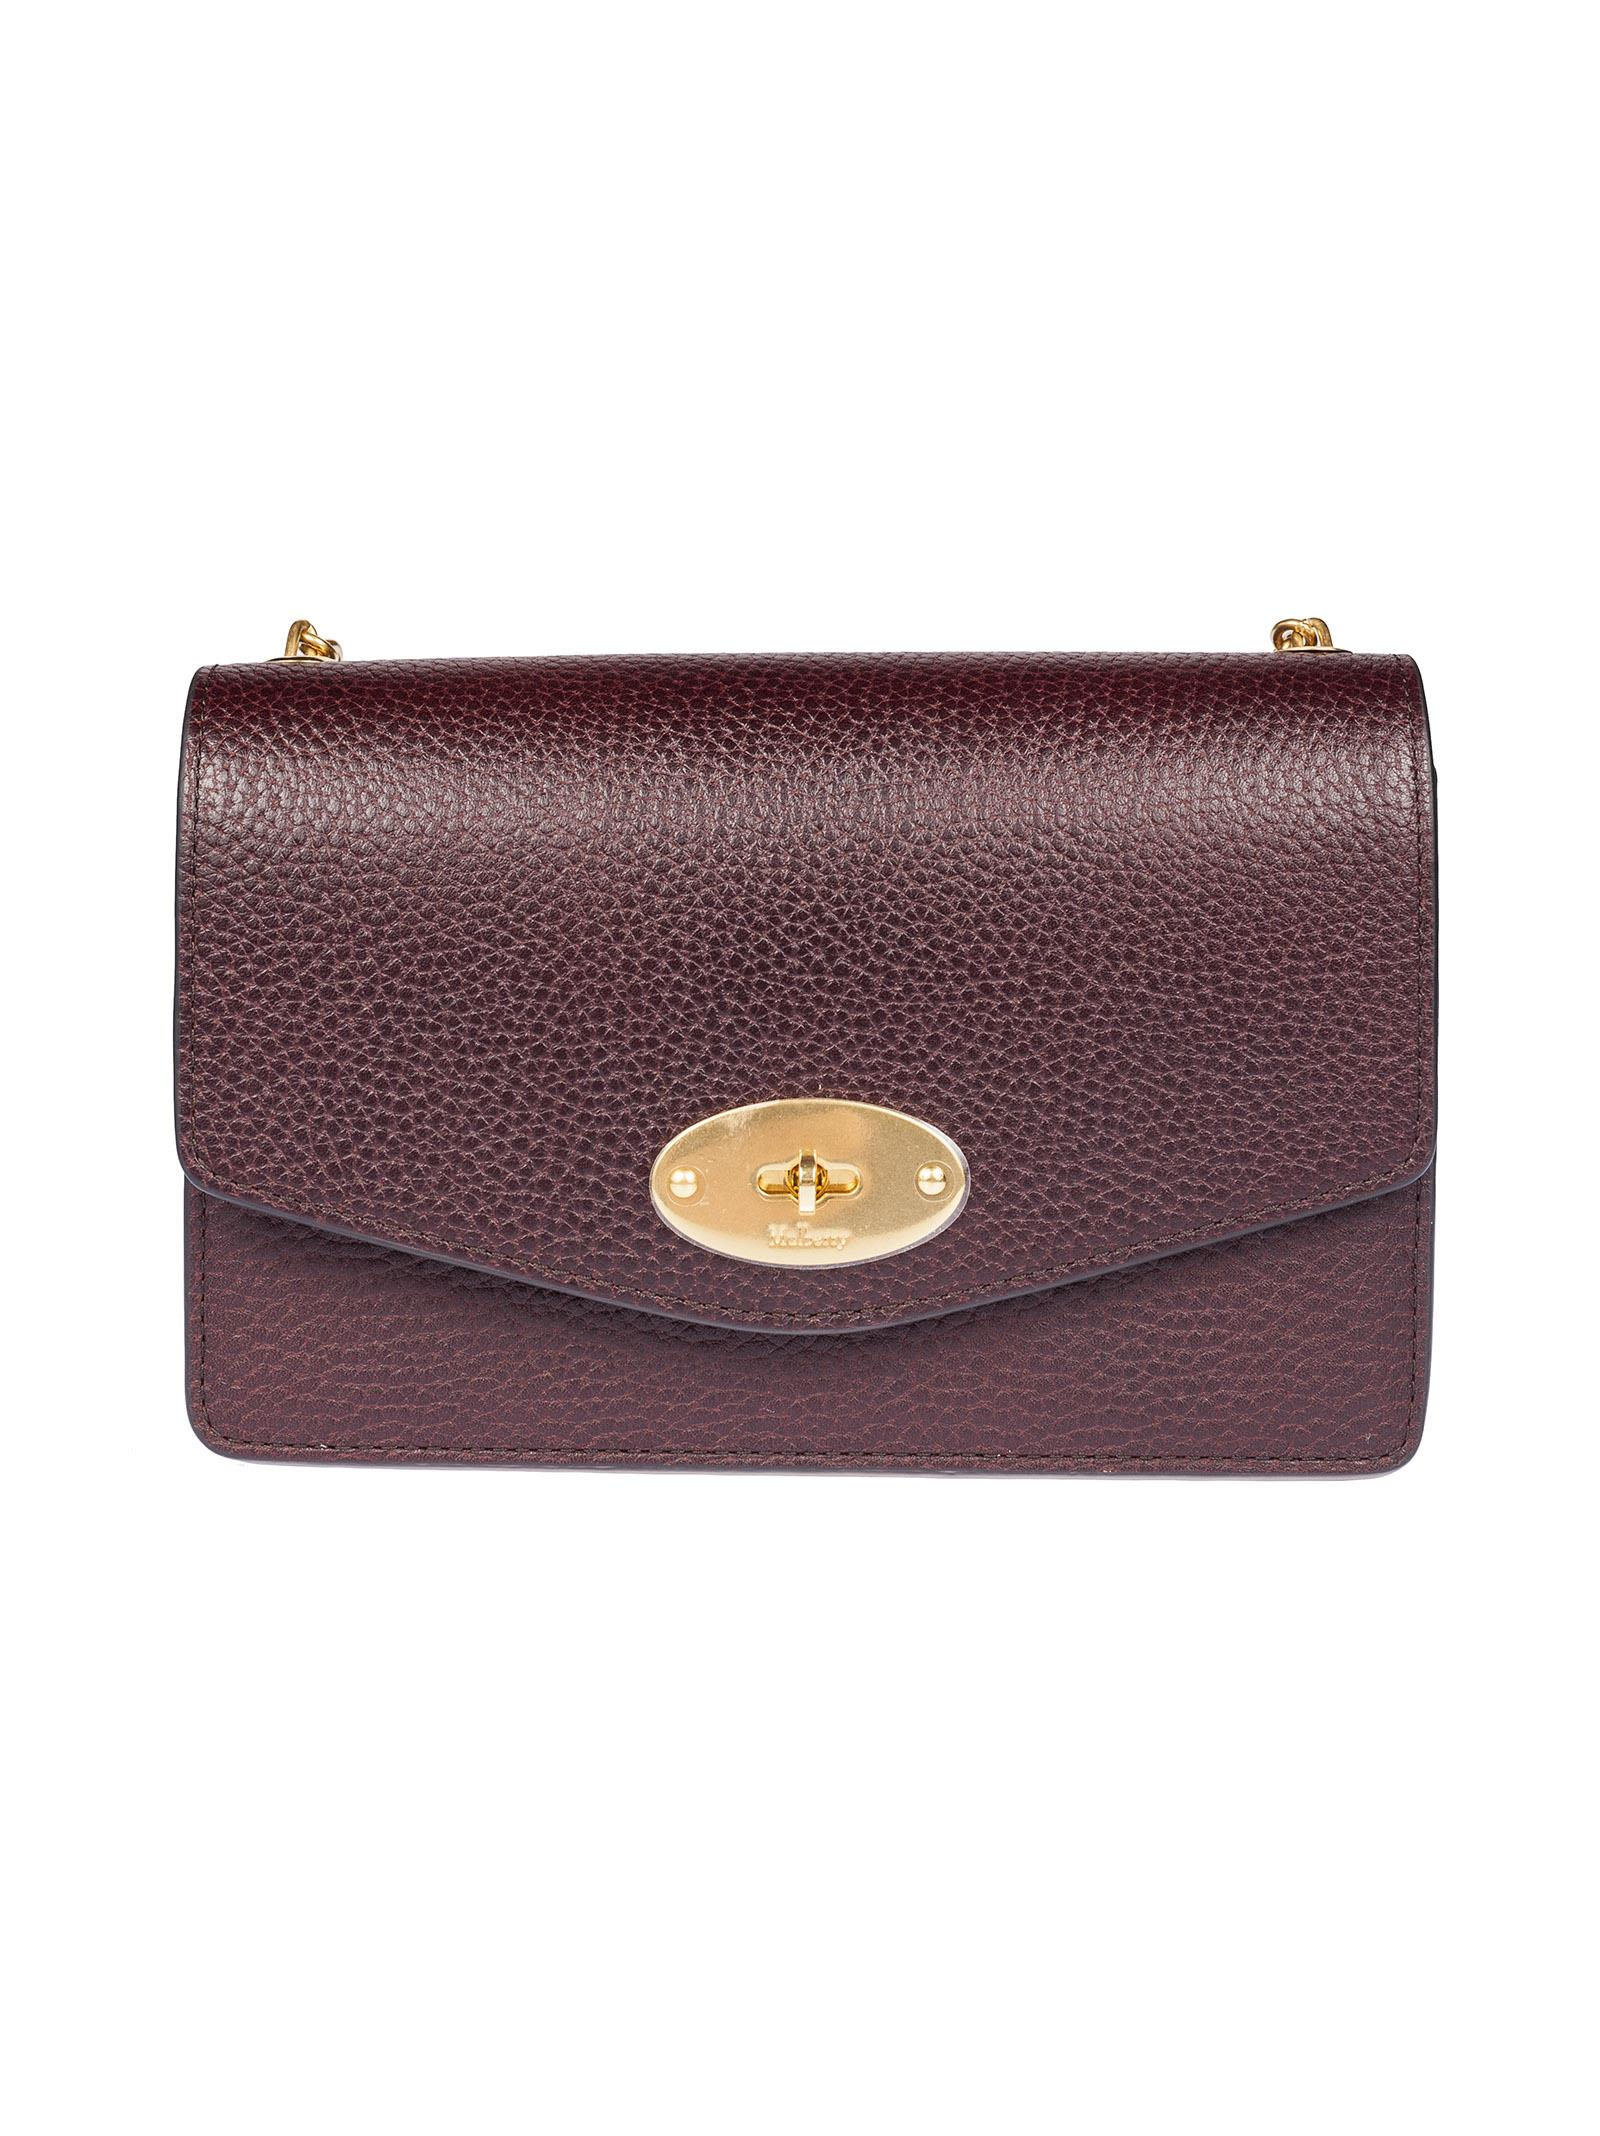 Mulberry Small Darley Clutch